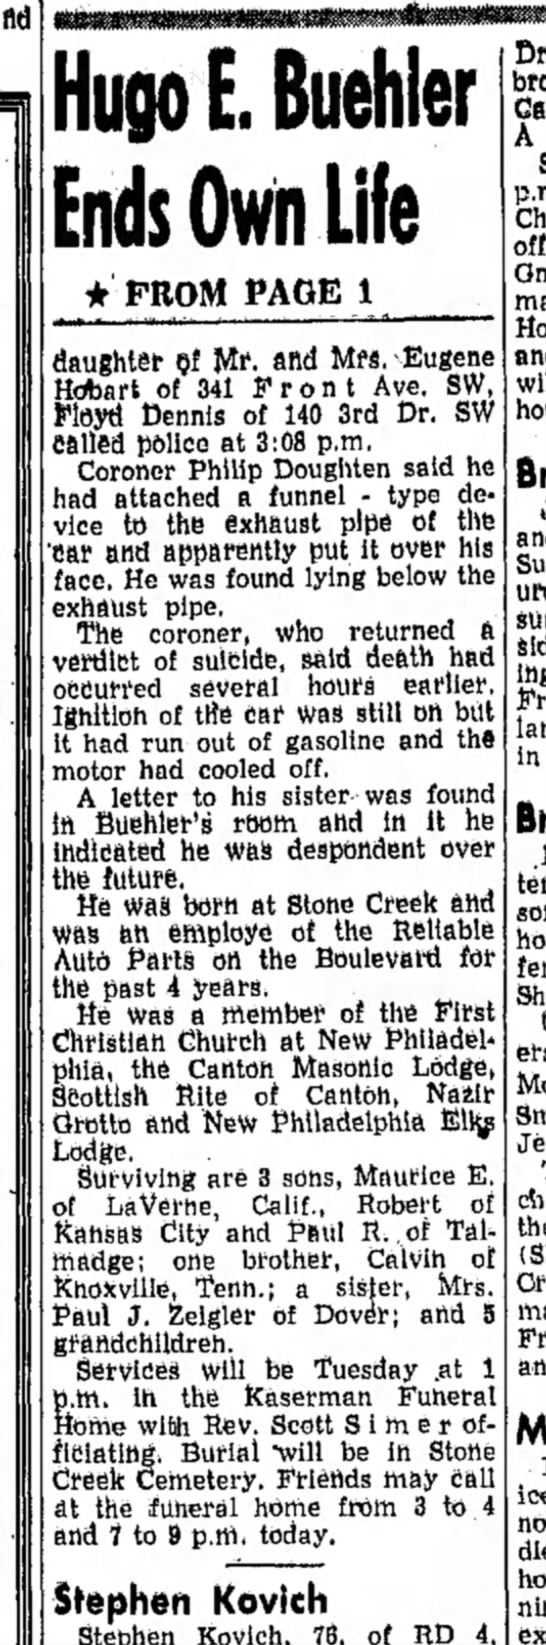 The  Daily Reporter (Dover, OH) April 25, 1960 -